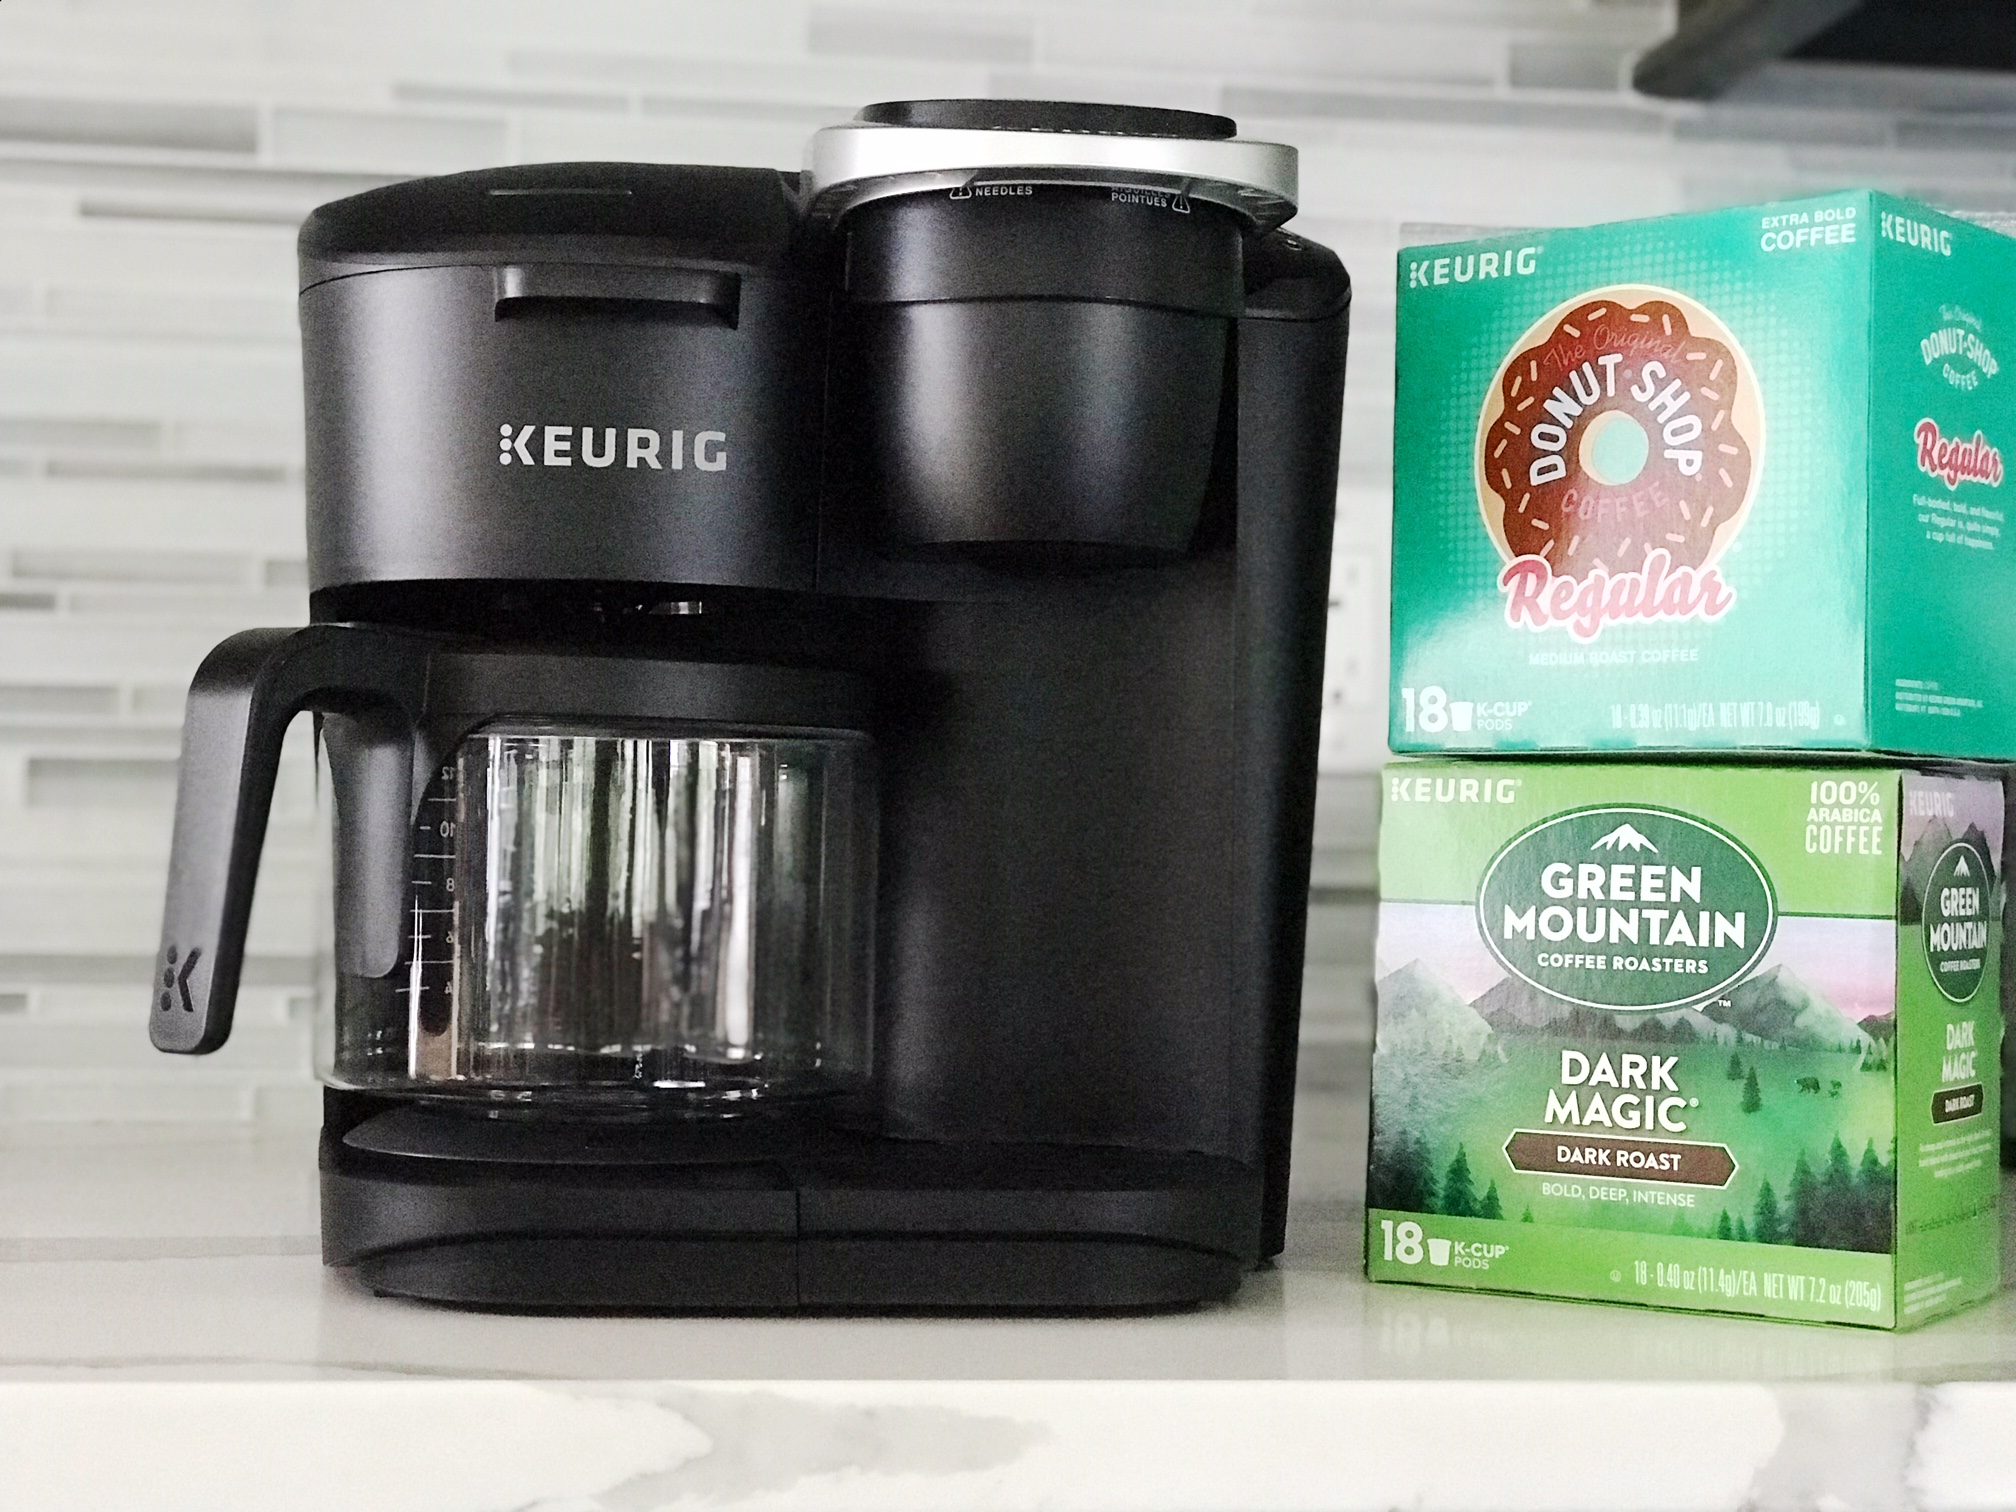 K-Duo with Carafe and K-Cups